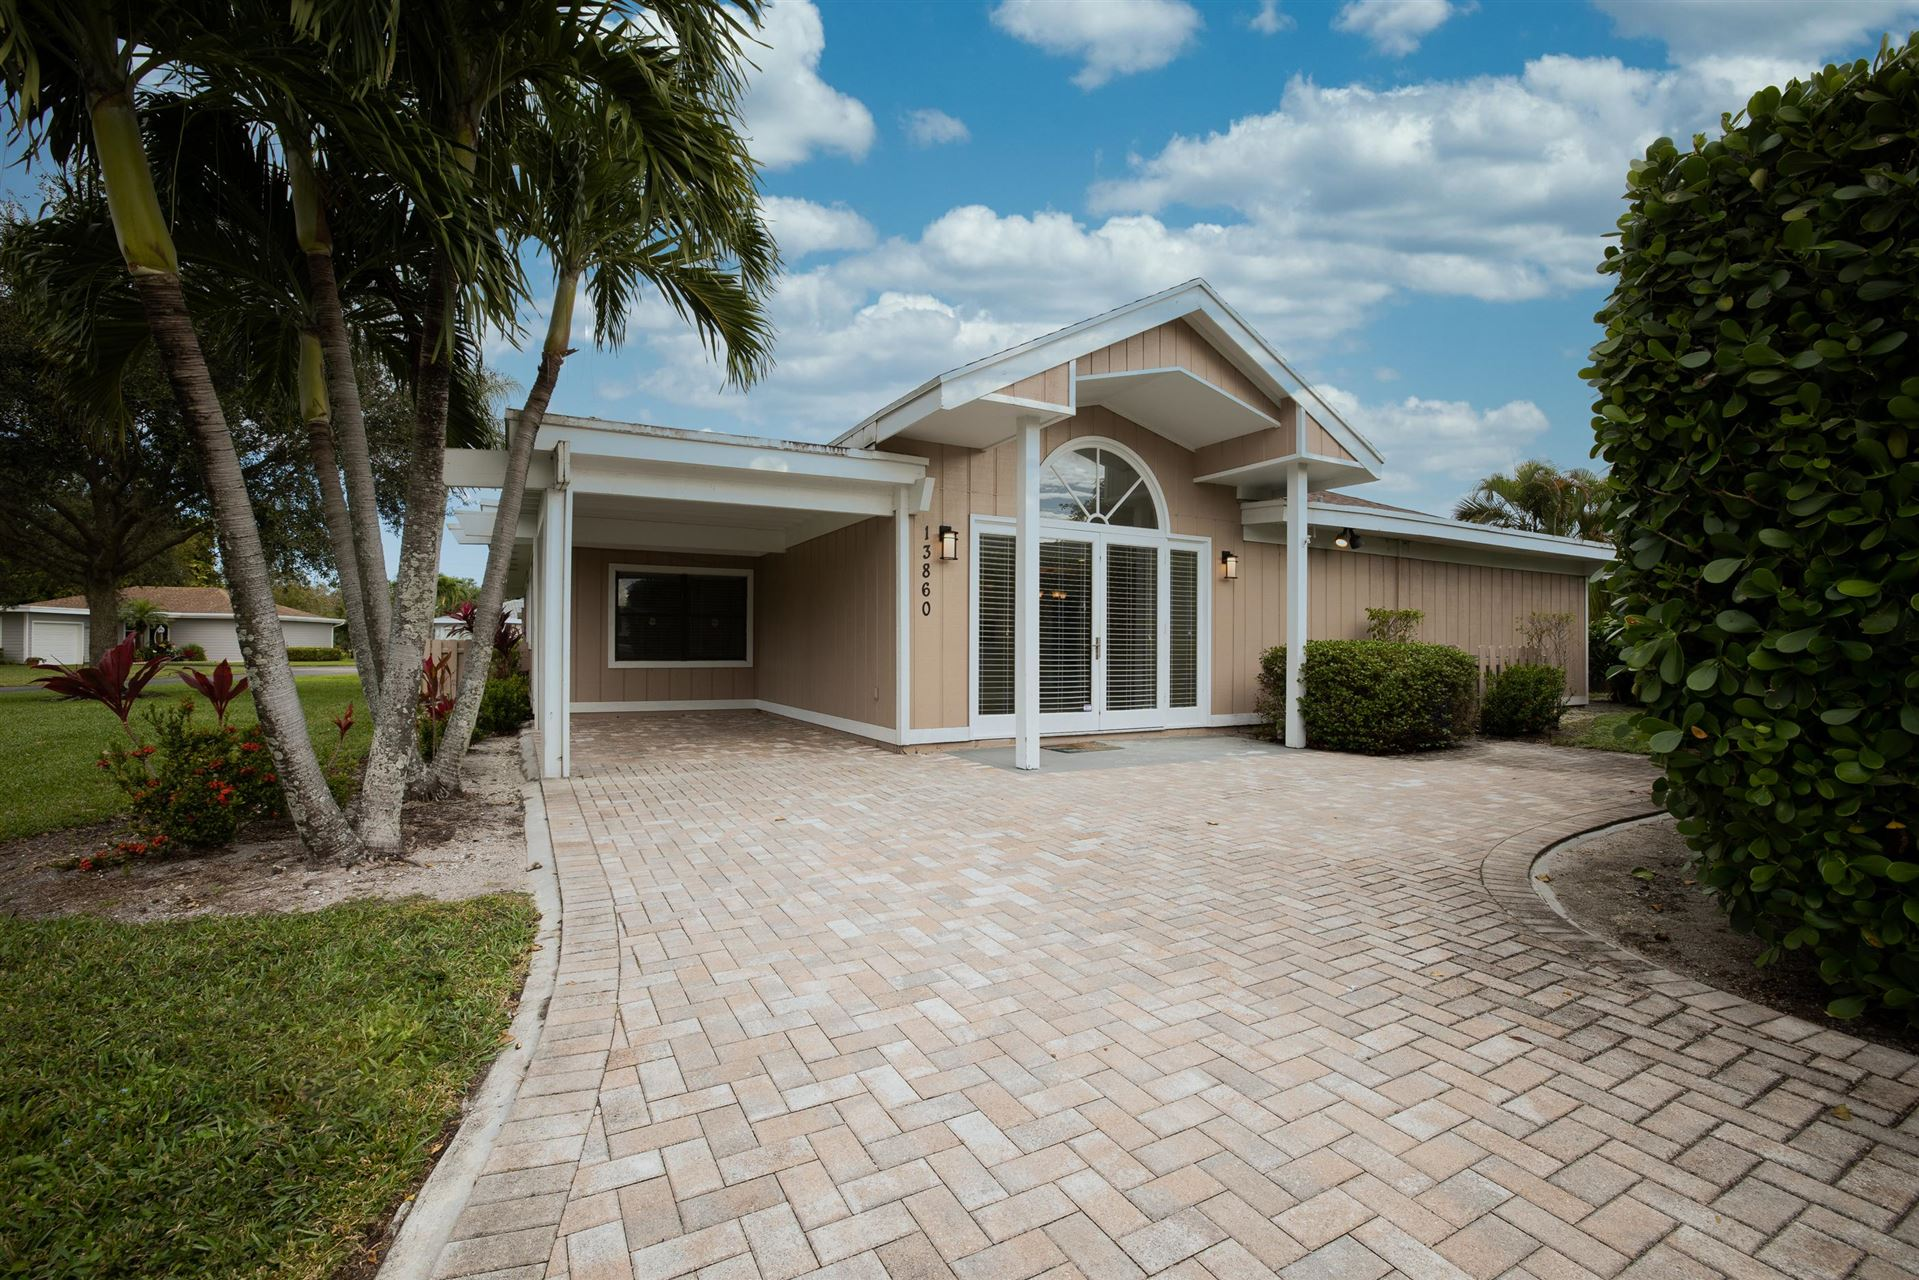 13860 Whispering Lakes Lane, West Palm Beach, FL 33418 - #: RX-10680401